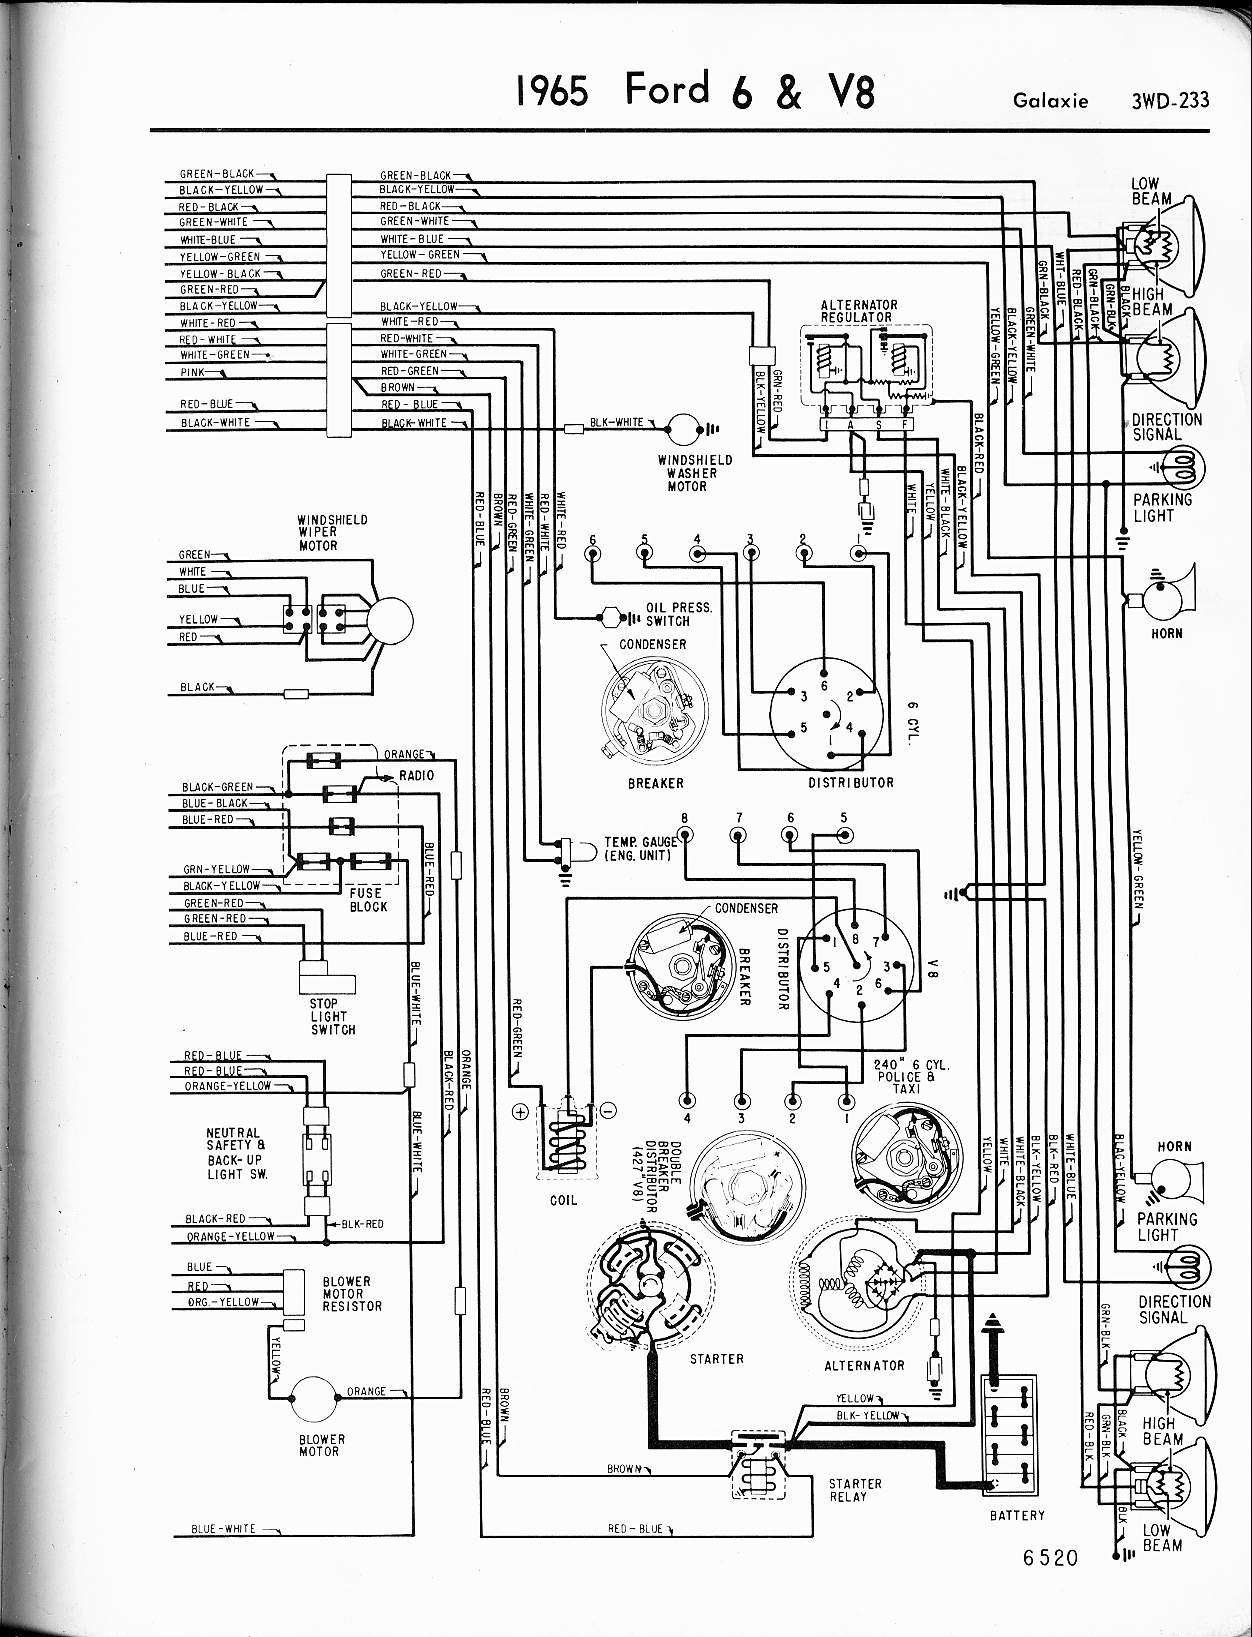 1967 Ford Truck F 100 Wiring Diagrams together with 1976 Ford F350 Wiring Diagram additionally 1969 Chevy Truck Turn Signal Wiring Diagram further 75 Ford F250 Ignition Wiring Diagrams together with Fordindex. on 1975 ford f250 wiring diagram